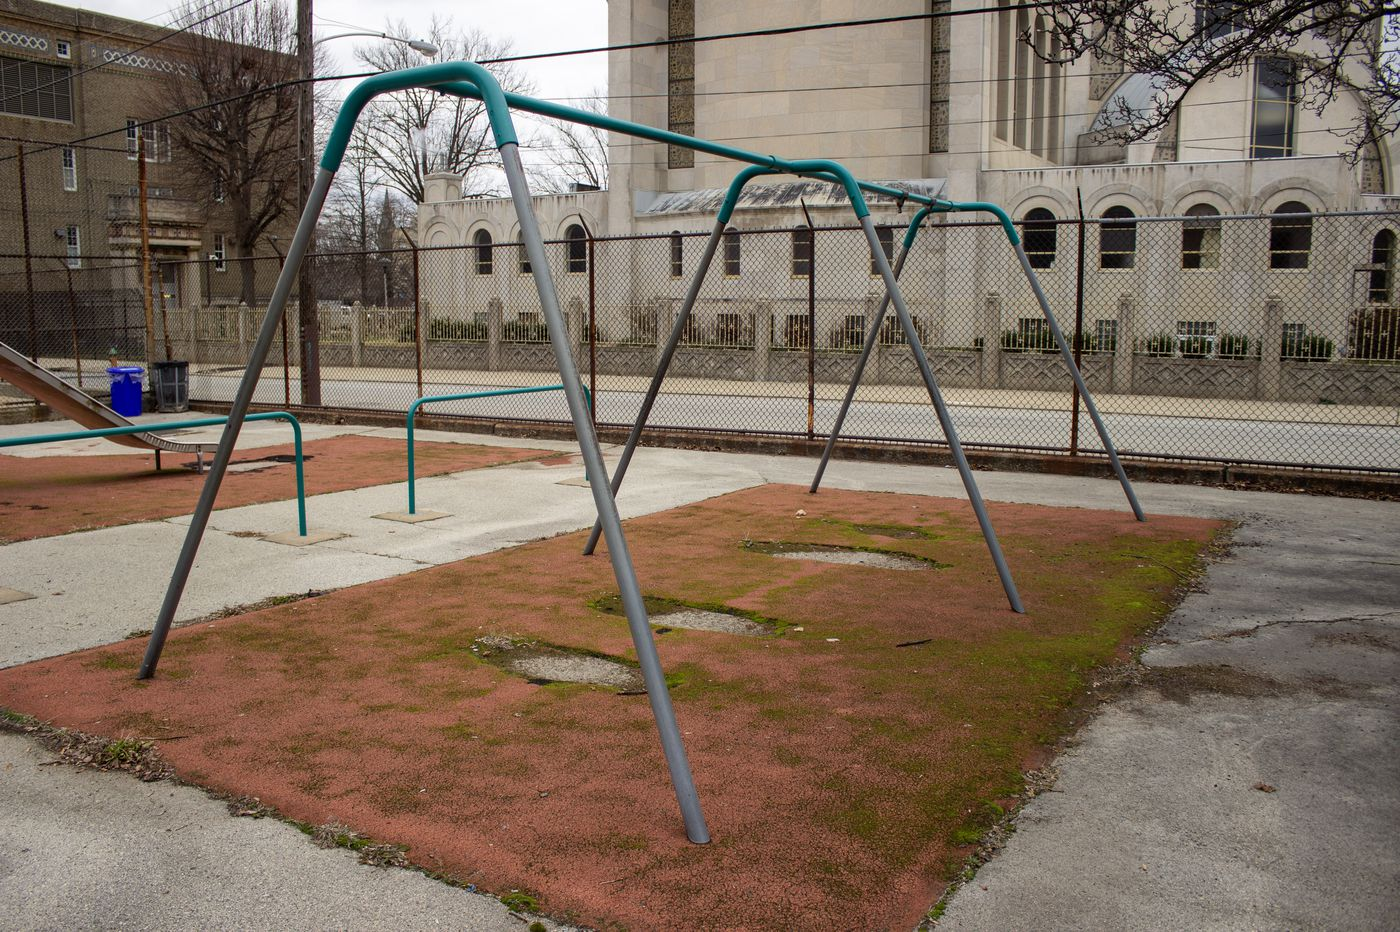 Rebuild will make East Poplar and other playgrounds better for Philly kids | Opinion